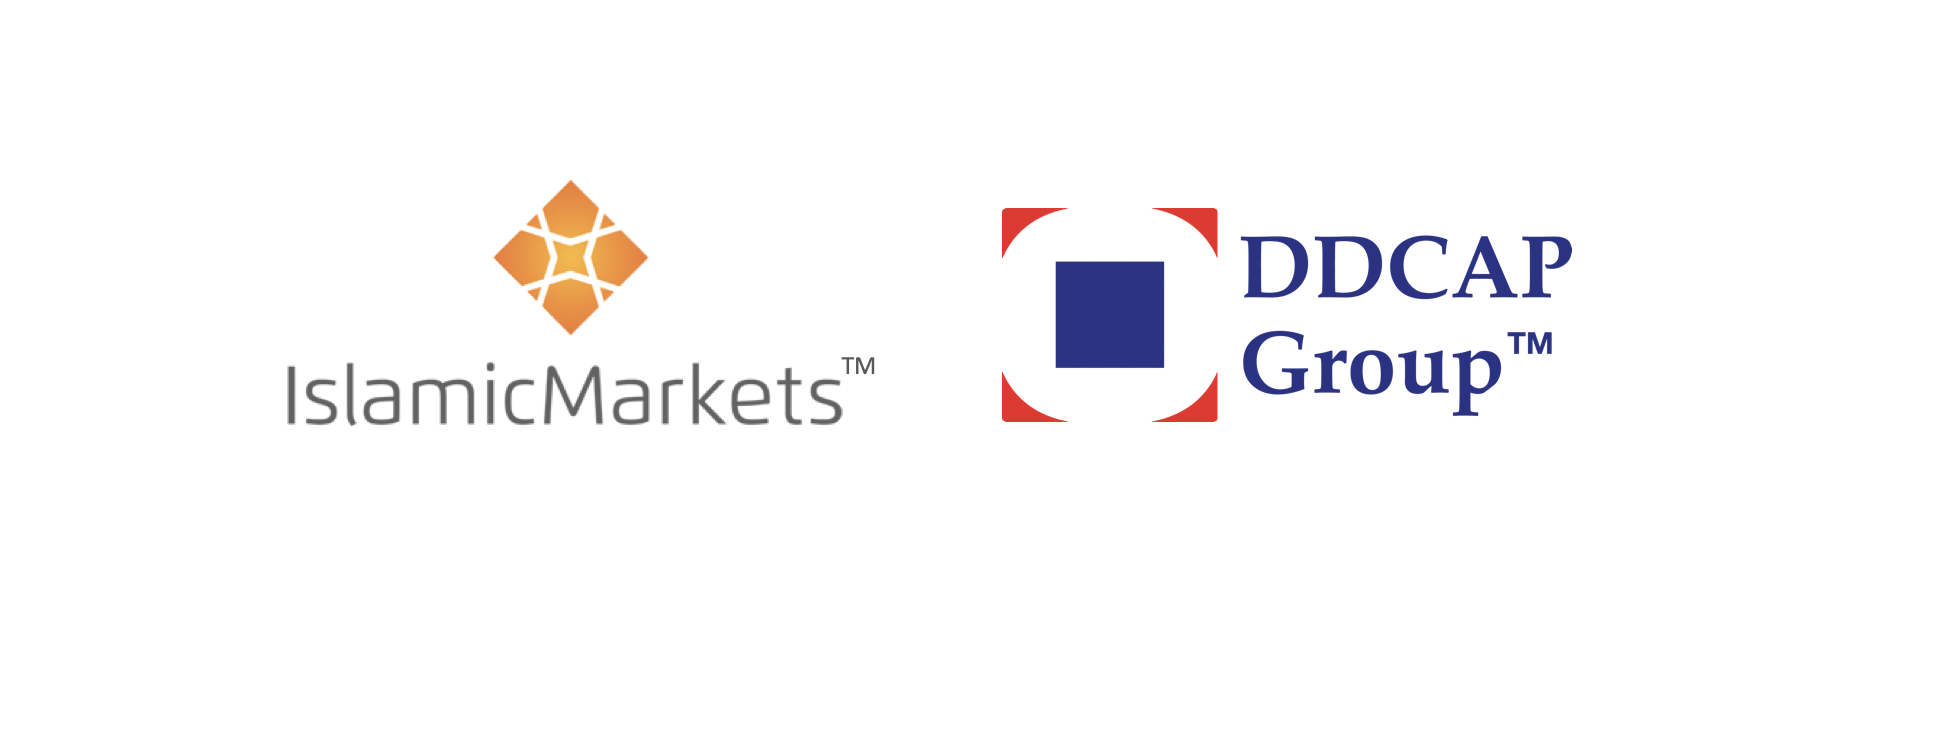 IslamicMarkets.com closes strategic funding round with DDCAP